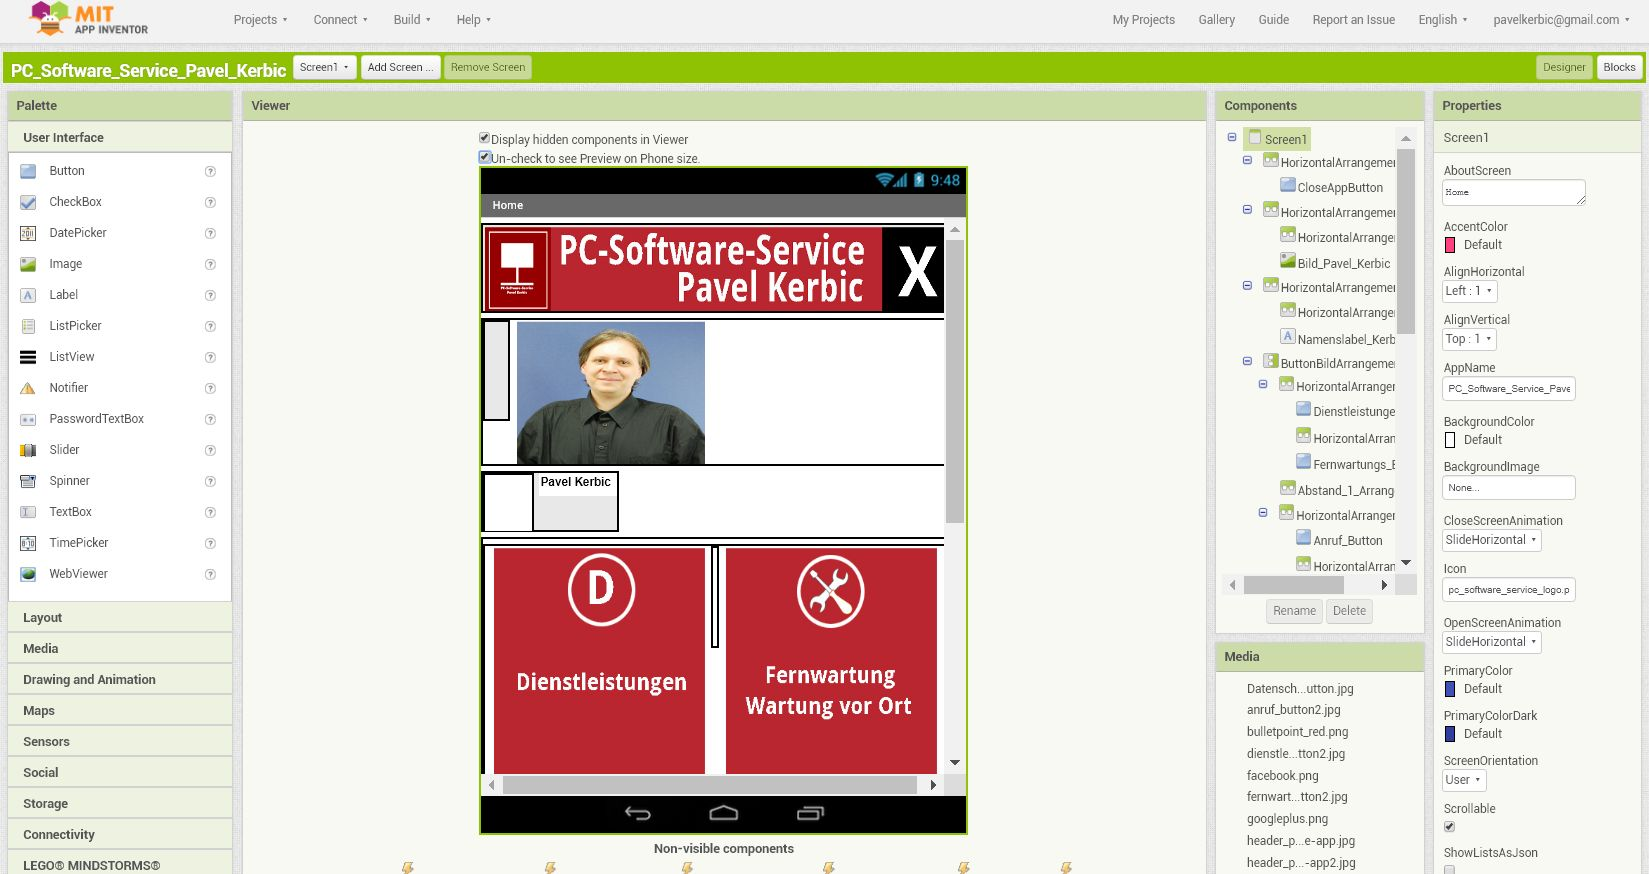 PK-Software-Service Pavel Kerbic - MIT AppInventor